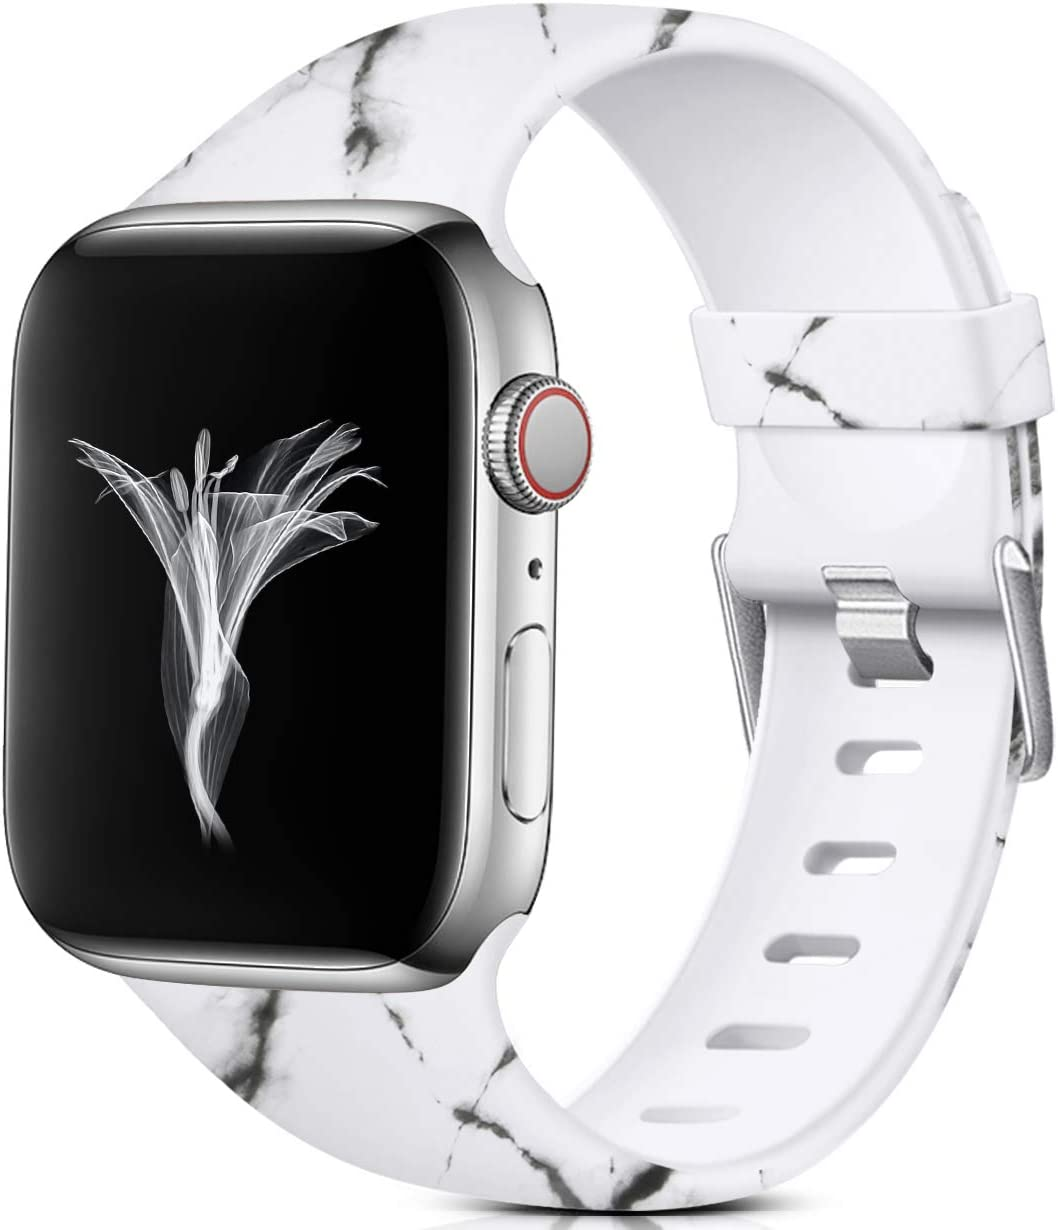 Nofeda Floral Bands Compatible with Apple Watch 40mm 38mm for Women Men, Soft Fadeless Pattern Printed Sport Band Replacement for iWatch Series 5,4,3,2,1, S/M, White Marble